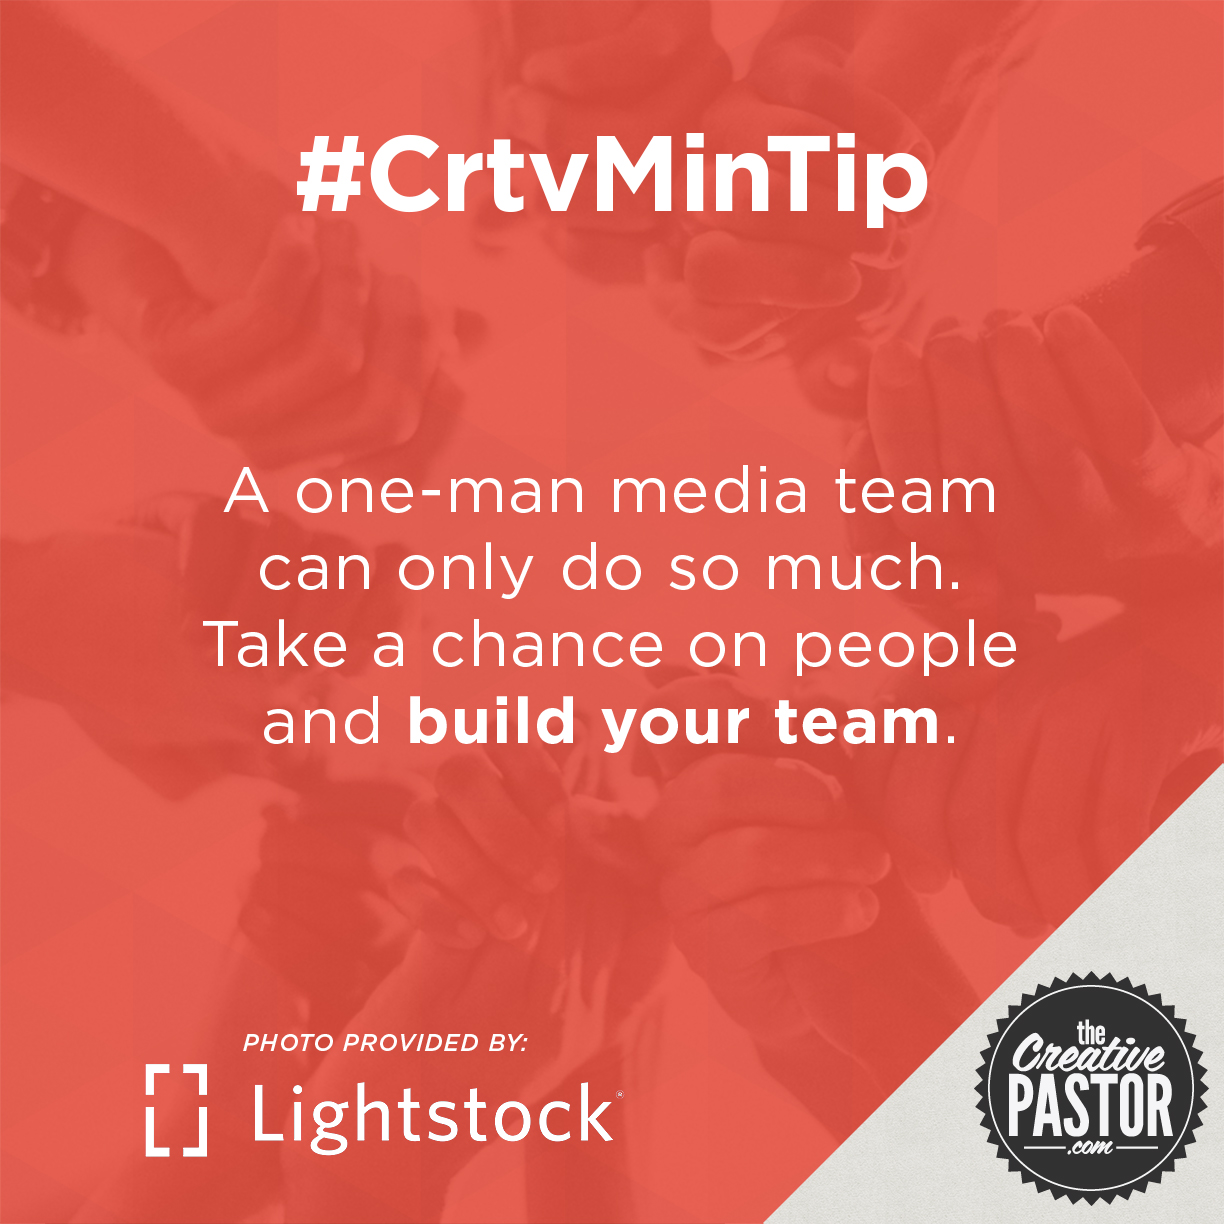 A one-man media team can only do so much. Take a chance on people and build your team.